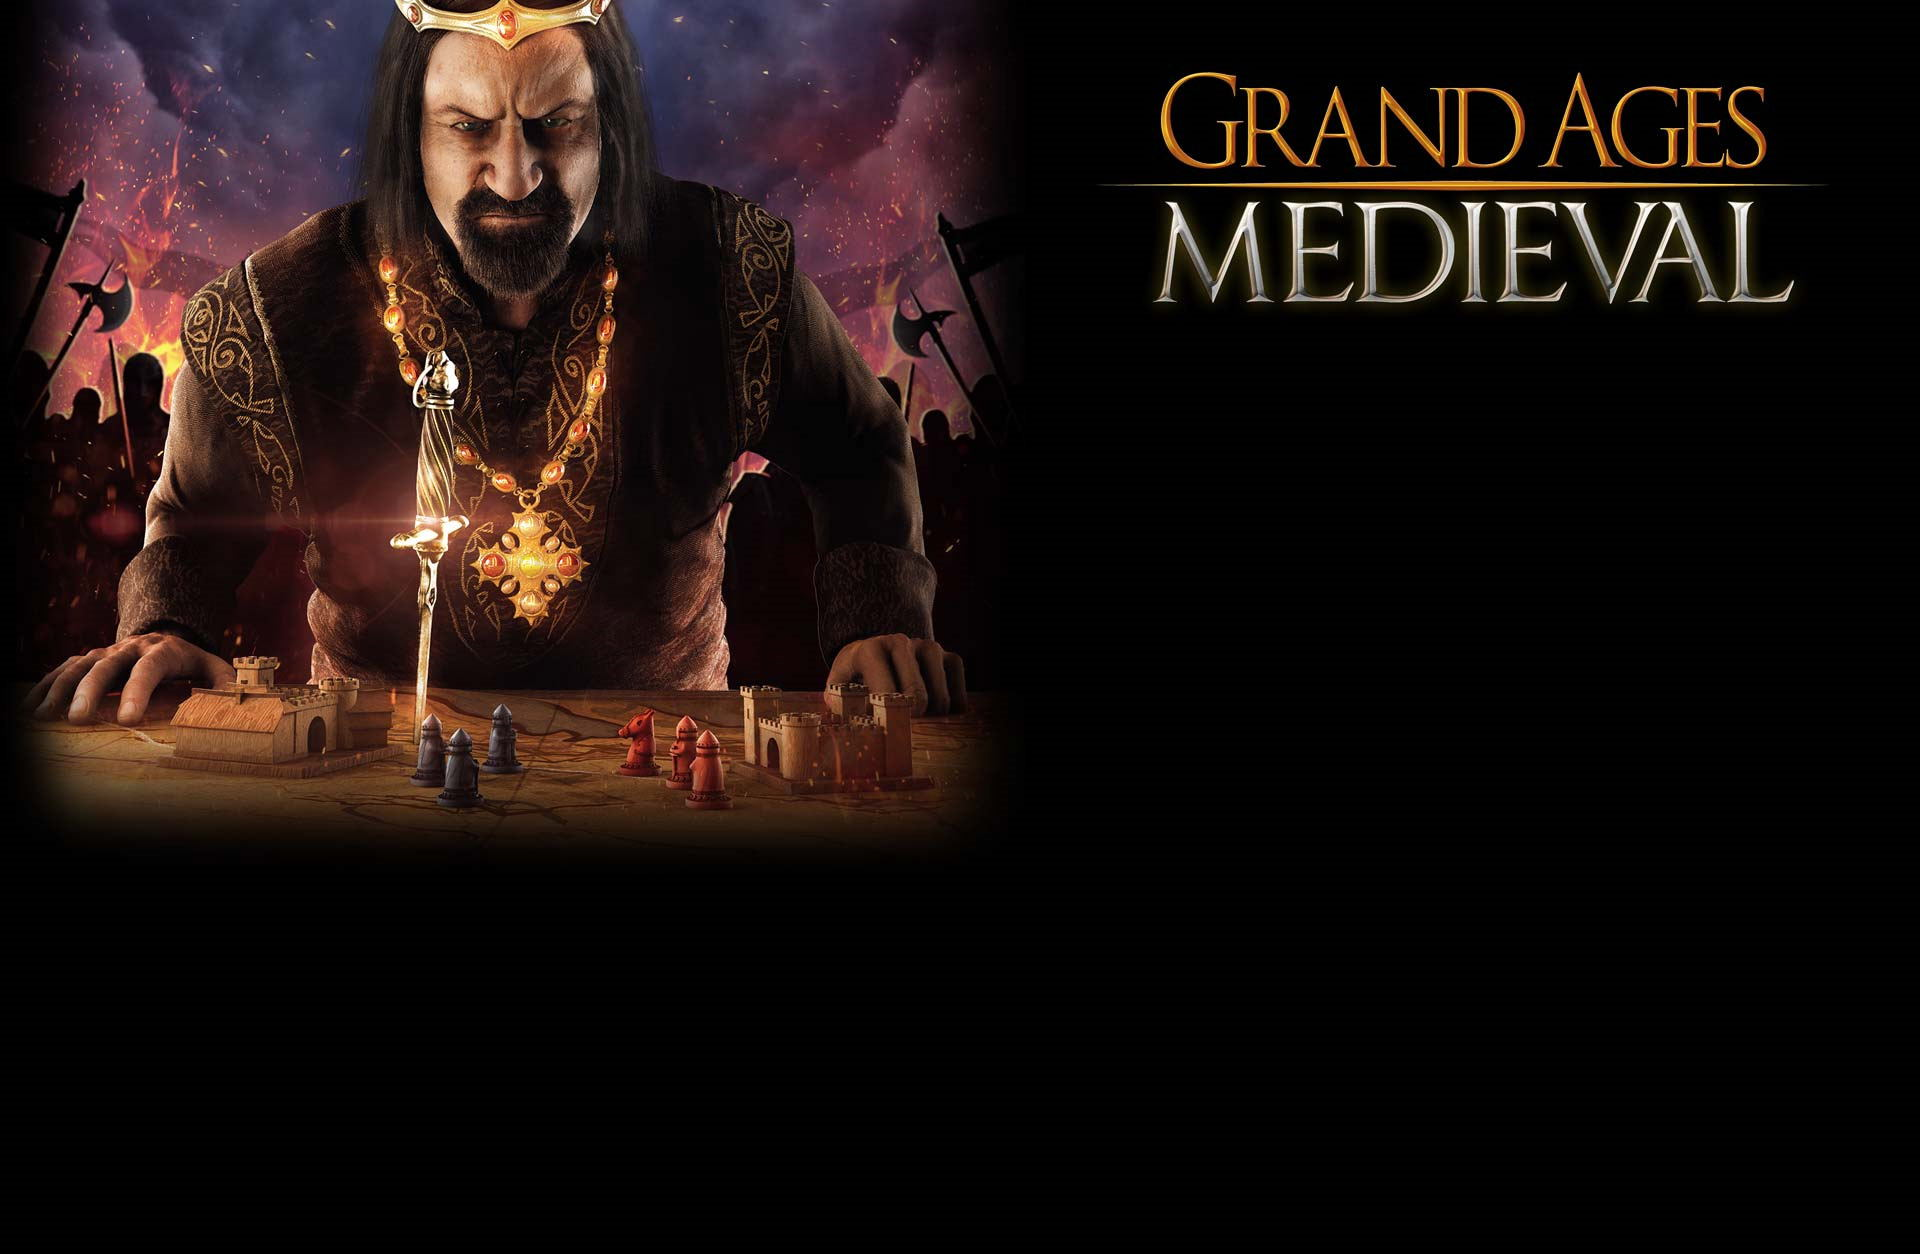 grand ages medieval game manual